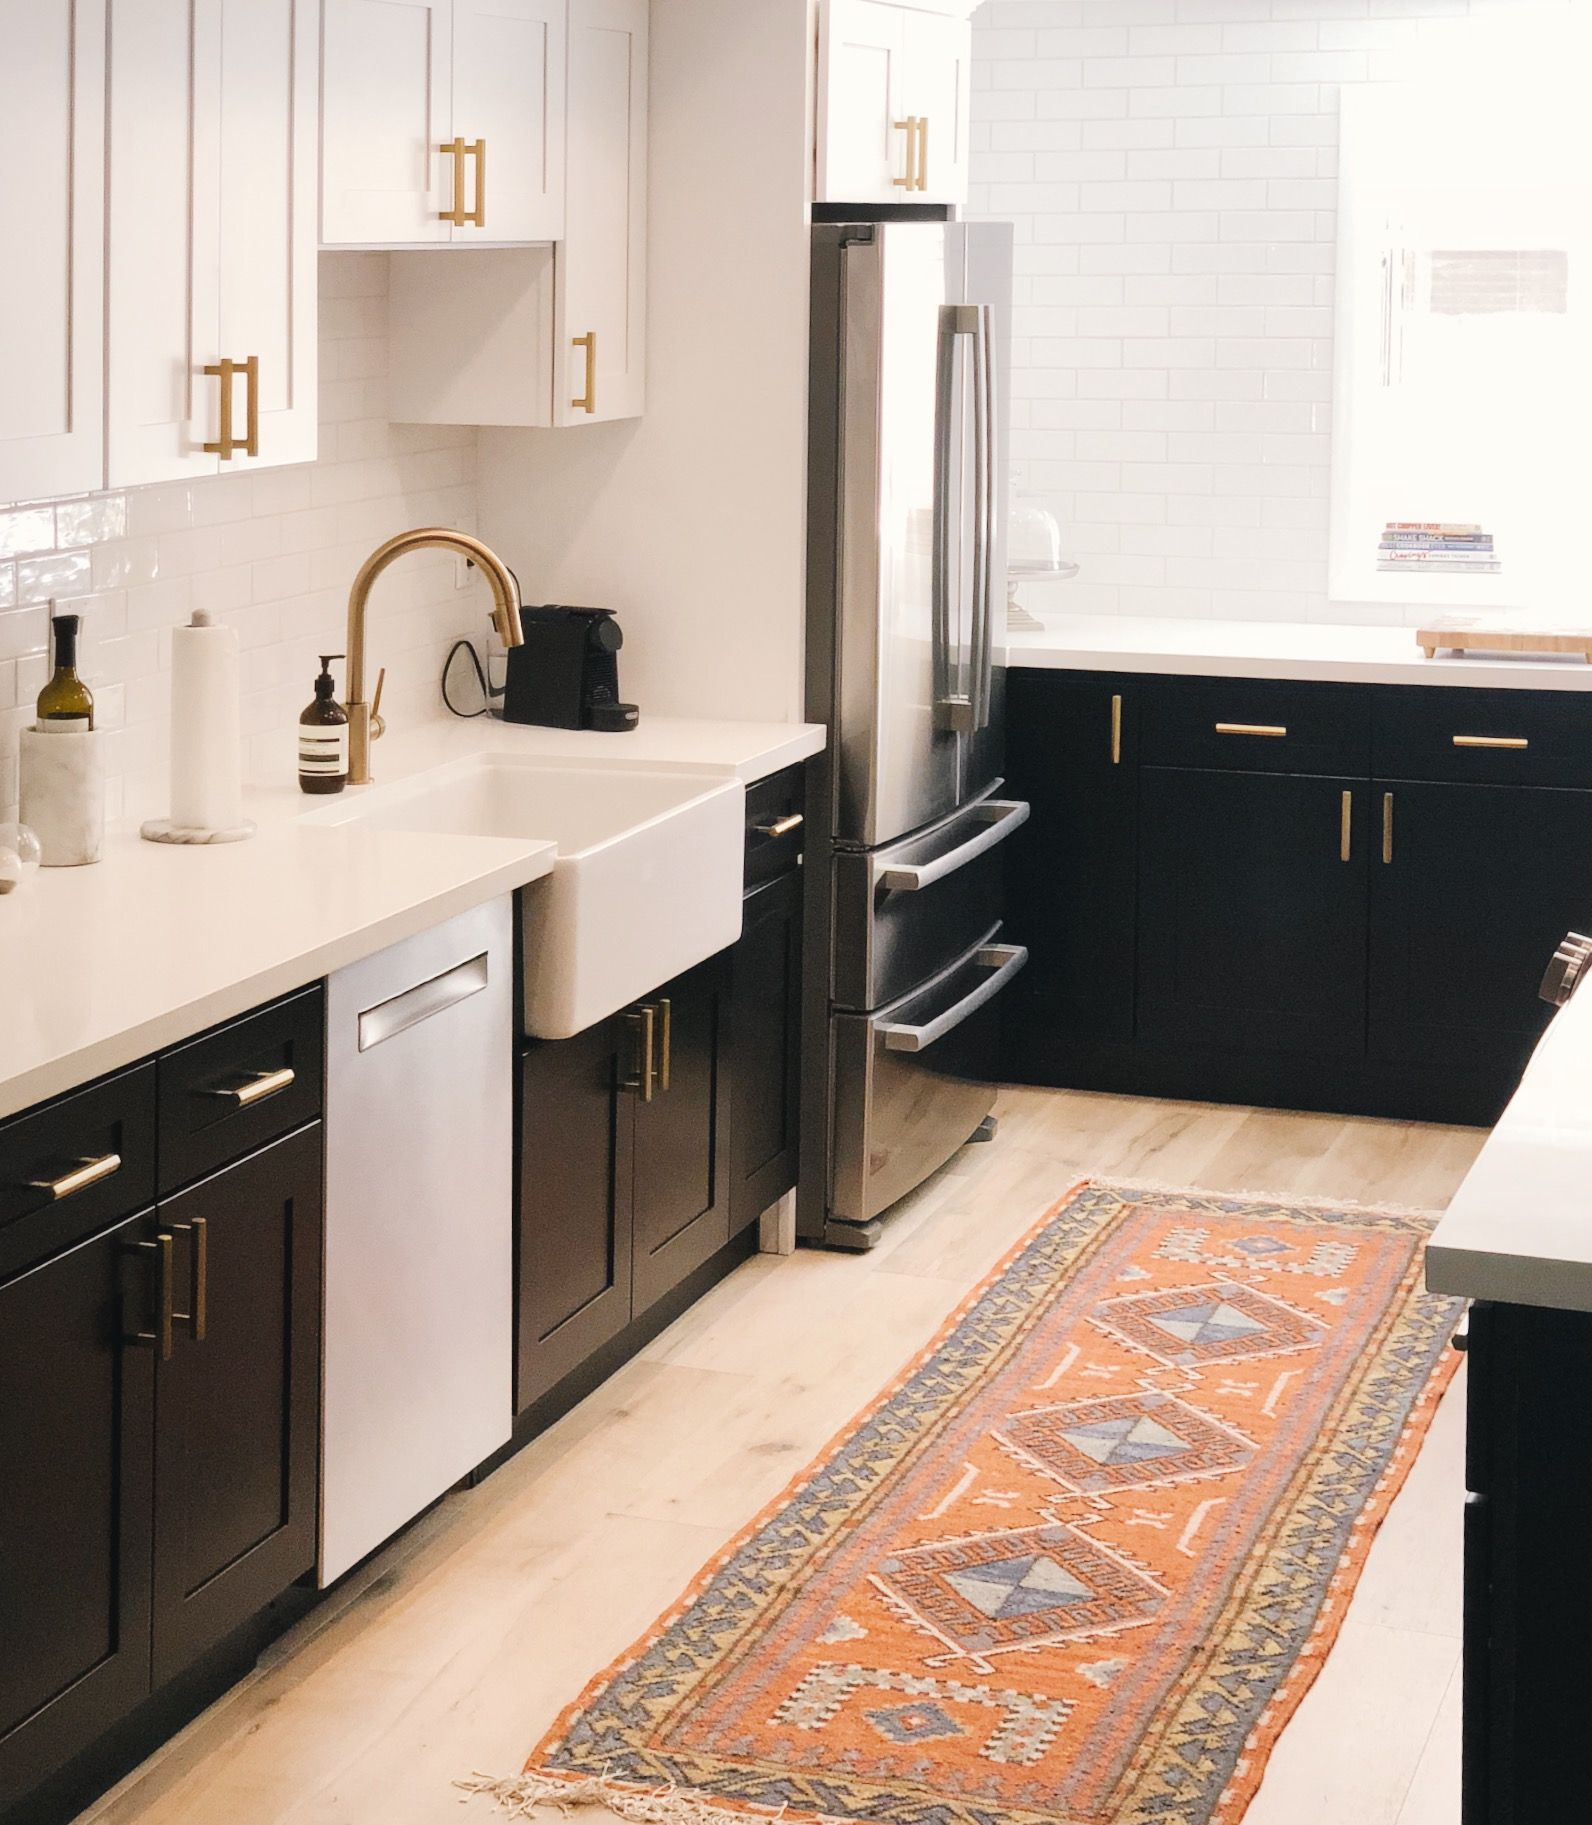 A modern two toned kitchen design Simple touches such as the gold